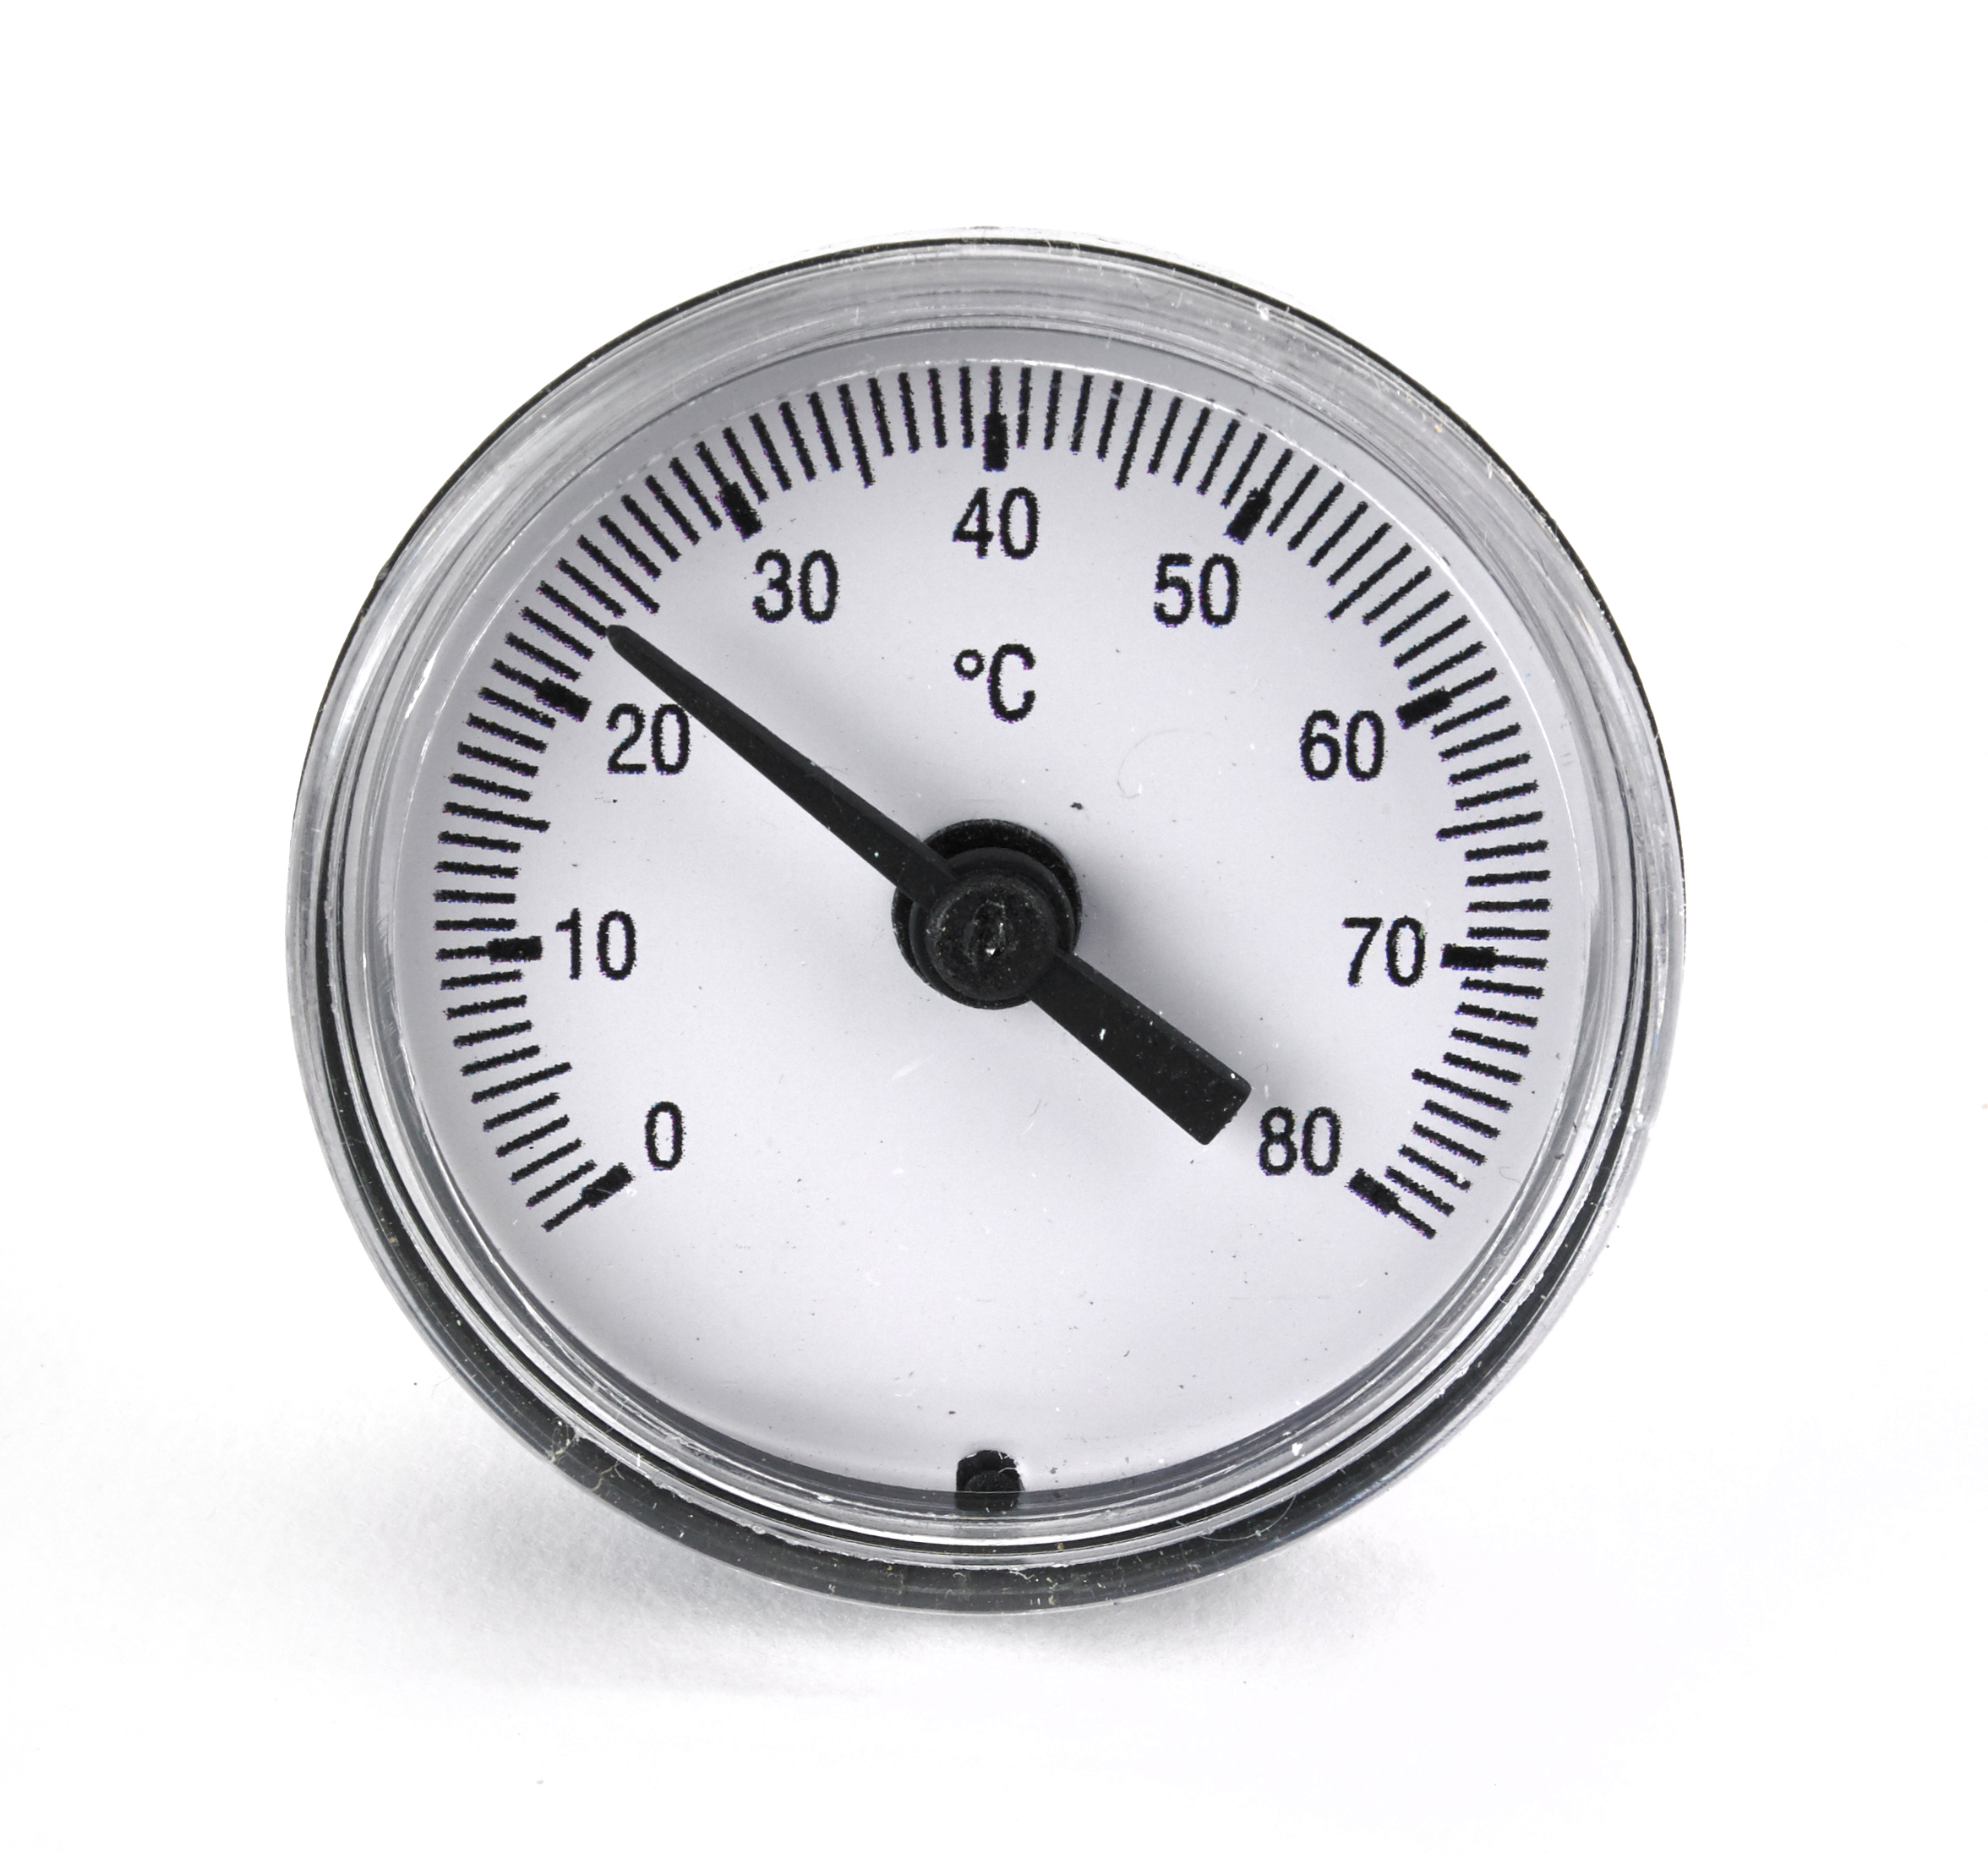 Hep2O Composite Manifold Thermometer